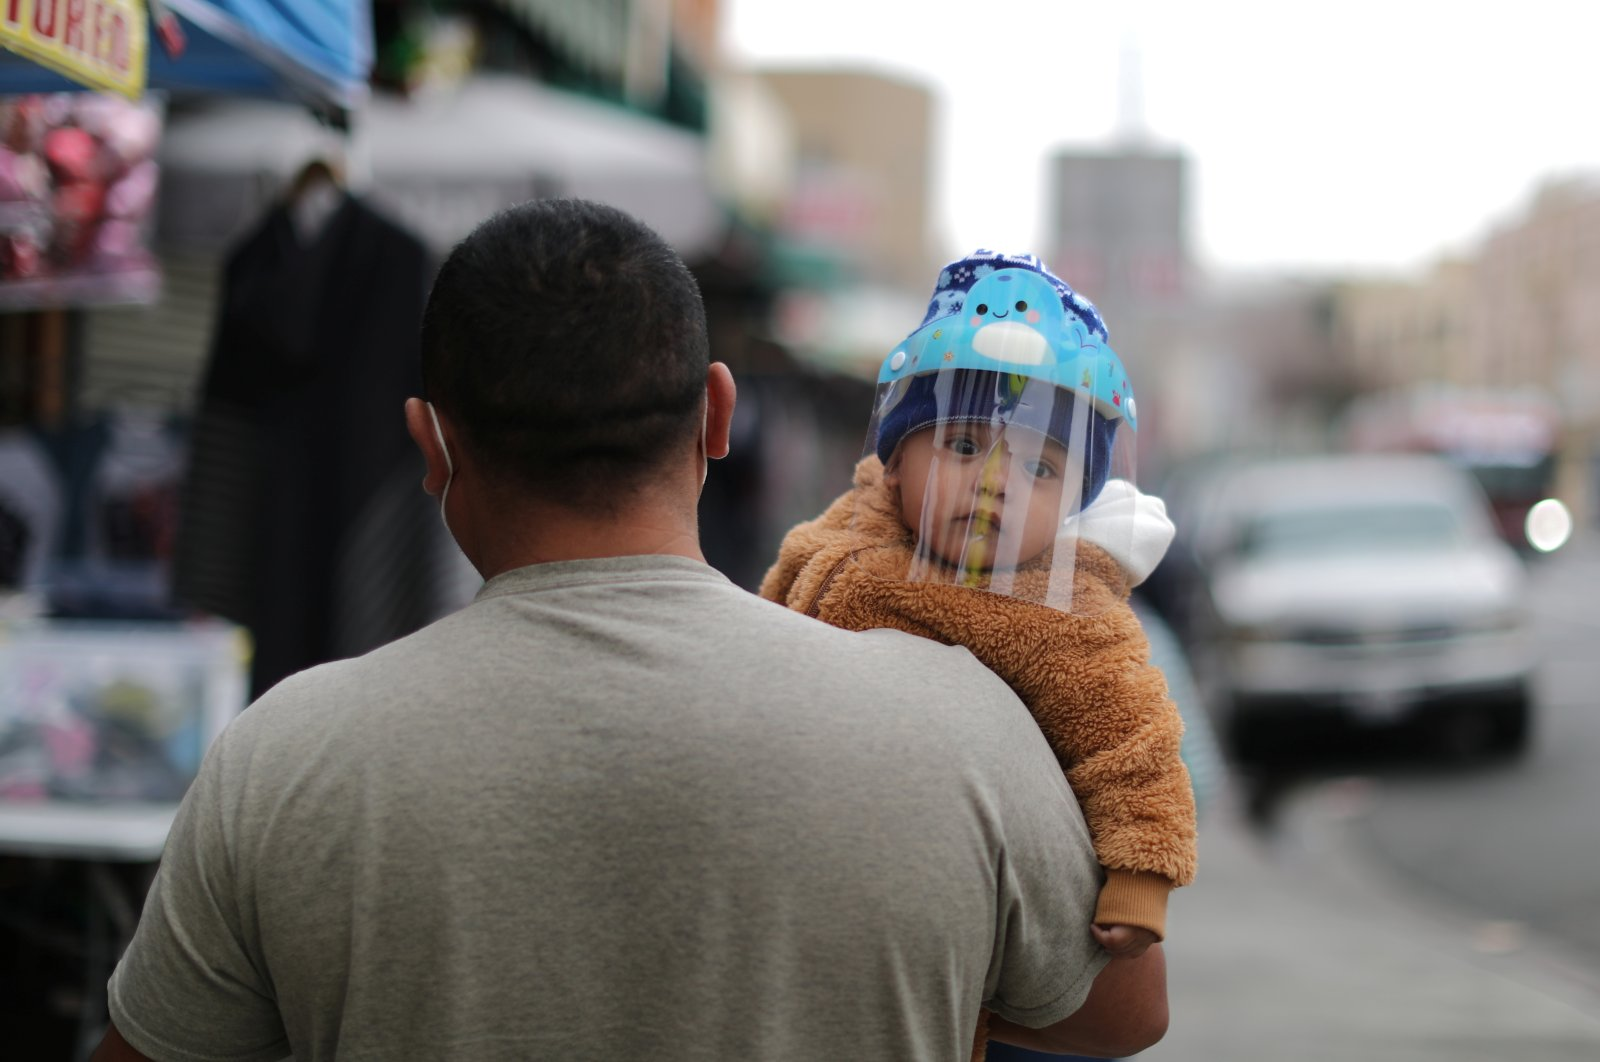 A man carries a baby wearing a face shield as protection against the coronavirus, in Los Angeles, California, U.S., Feb. 10, 2021. (REUTERS Photo)